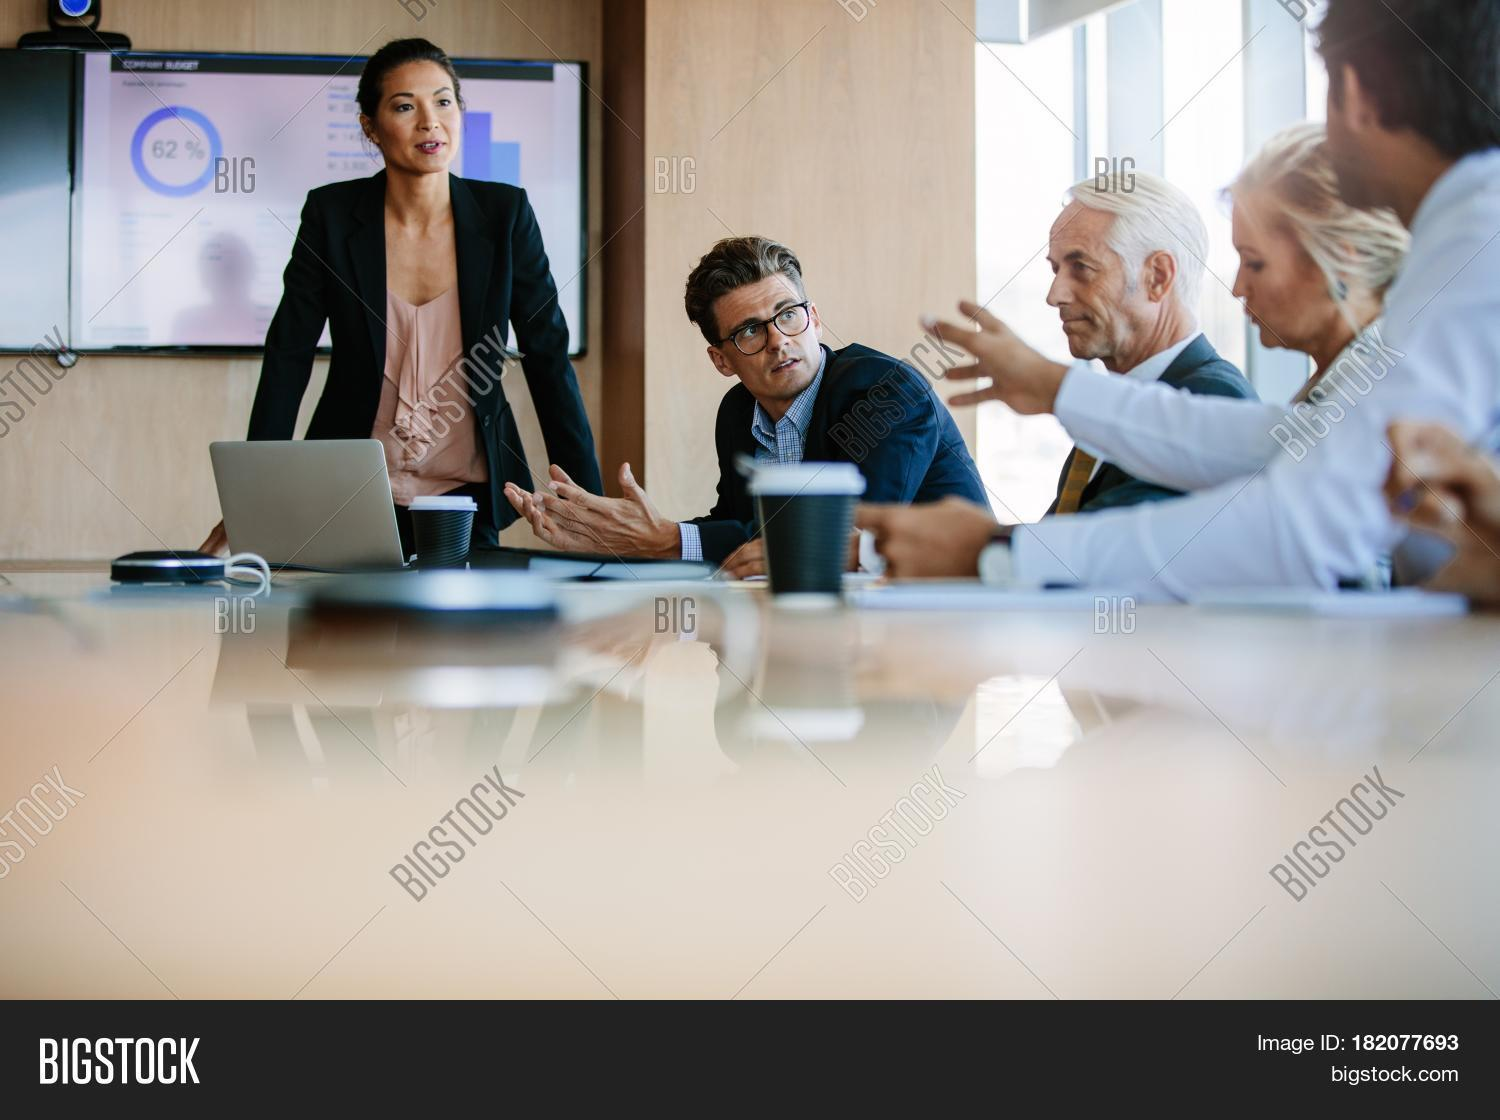 Miraculous Team Business People Image Photo Free Trial Bigstock Beutiful Home Inspiration Ommitmahrainfo